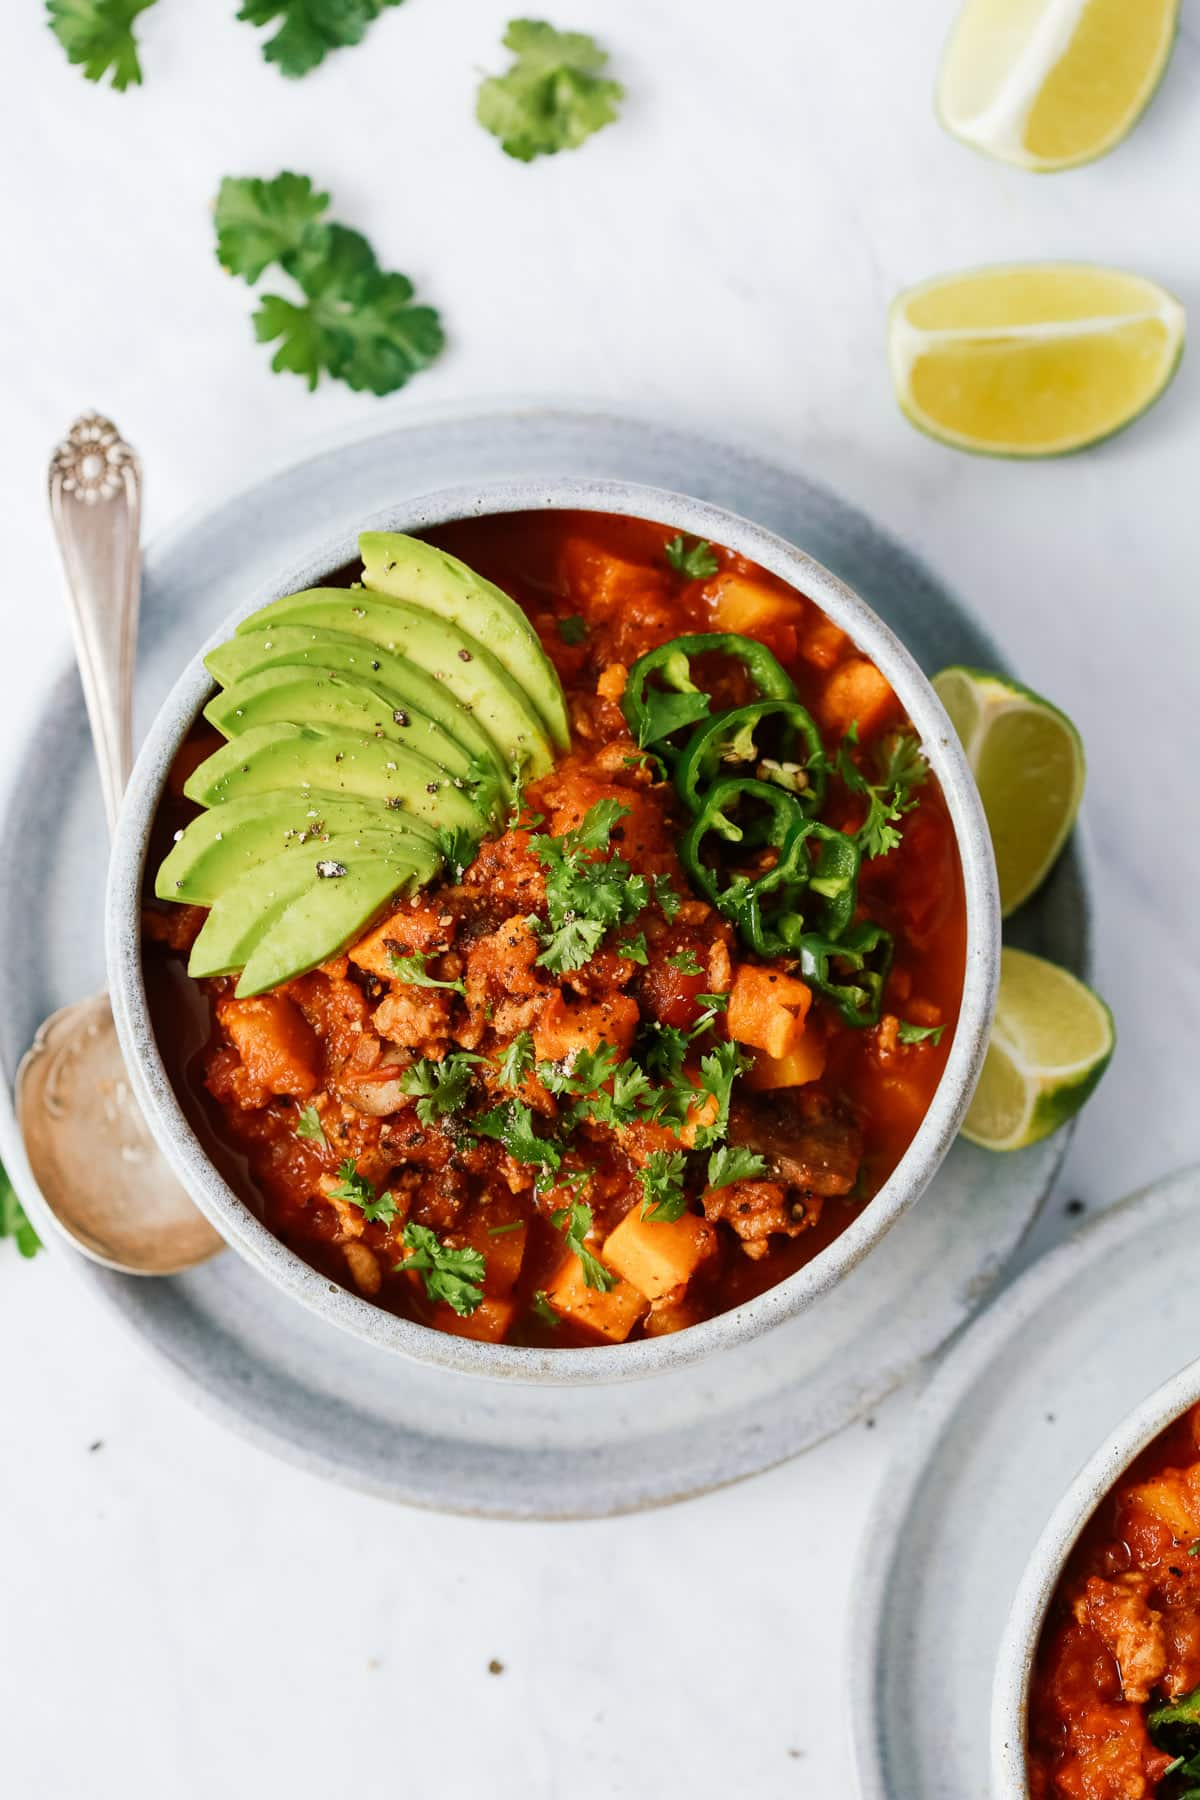 Bowl of sweet potato chili with avocado as garnish and limes around it.